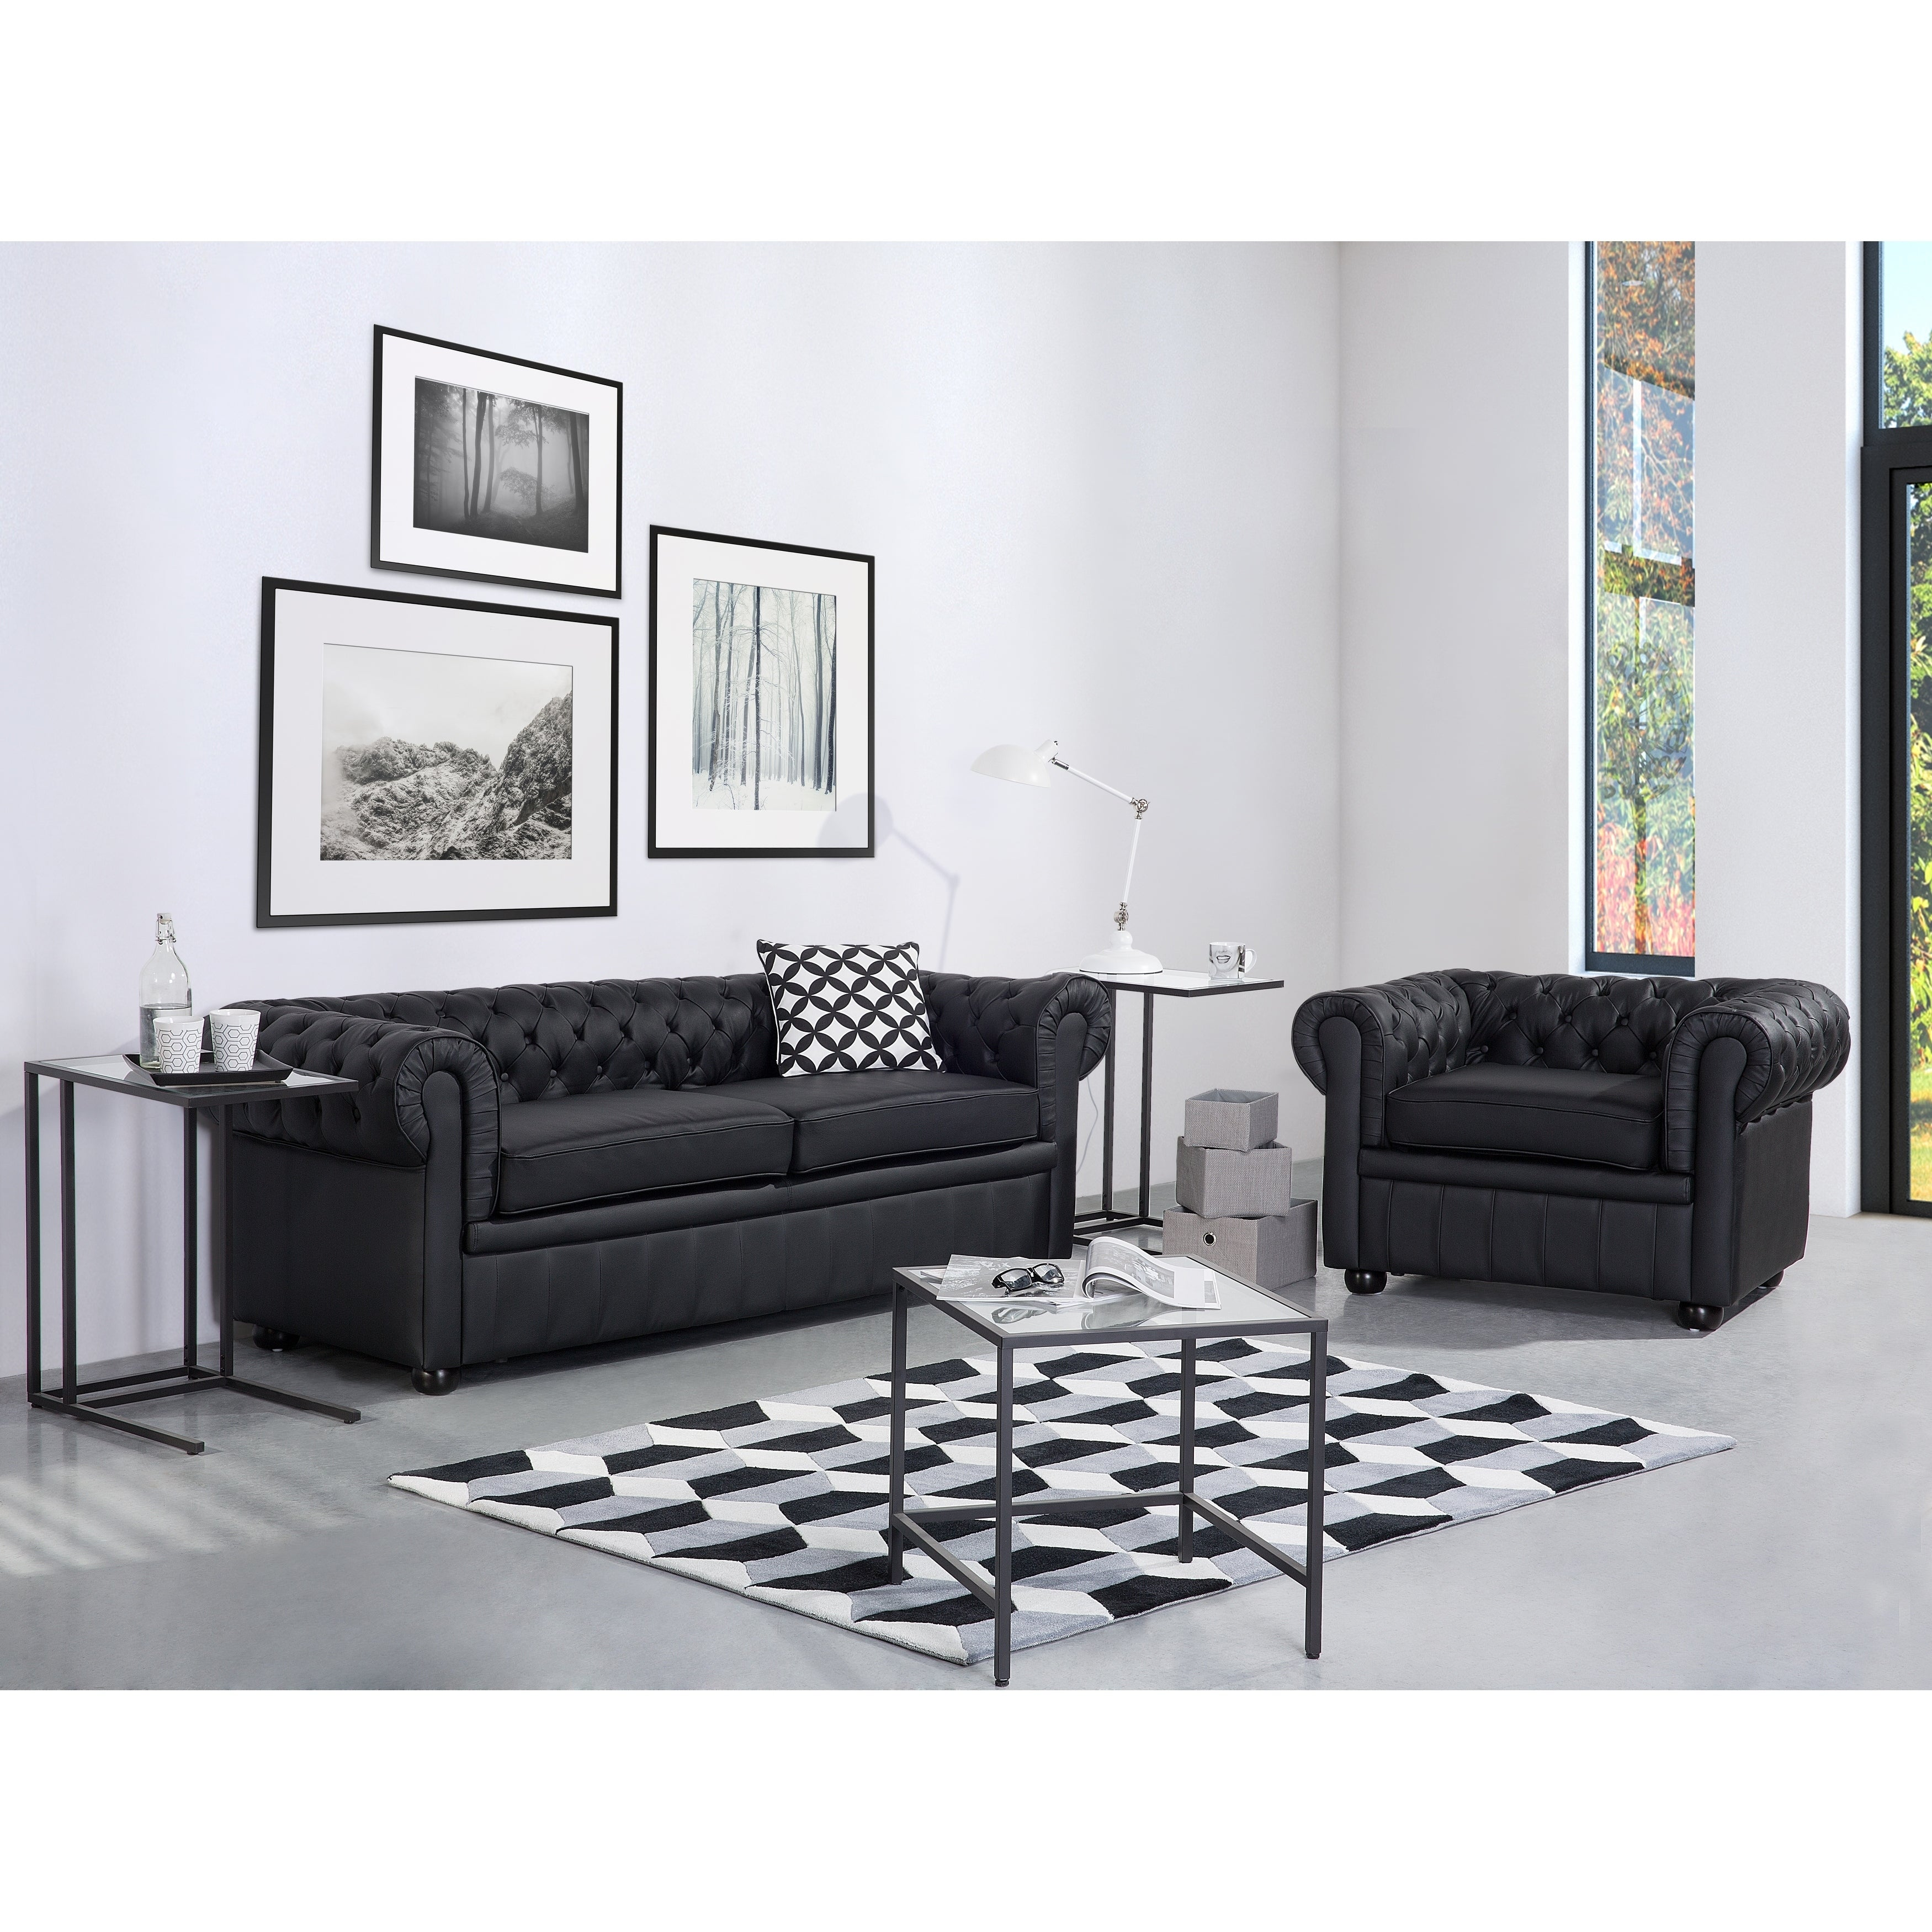 Shop Tufted Leather Sofa - Black CHESTERFIELD - Free Shipping Today ...